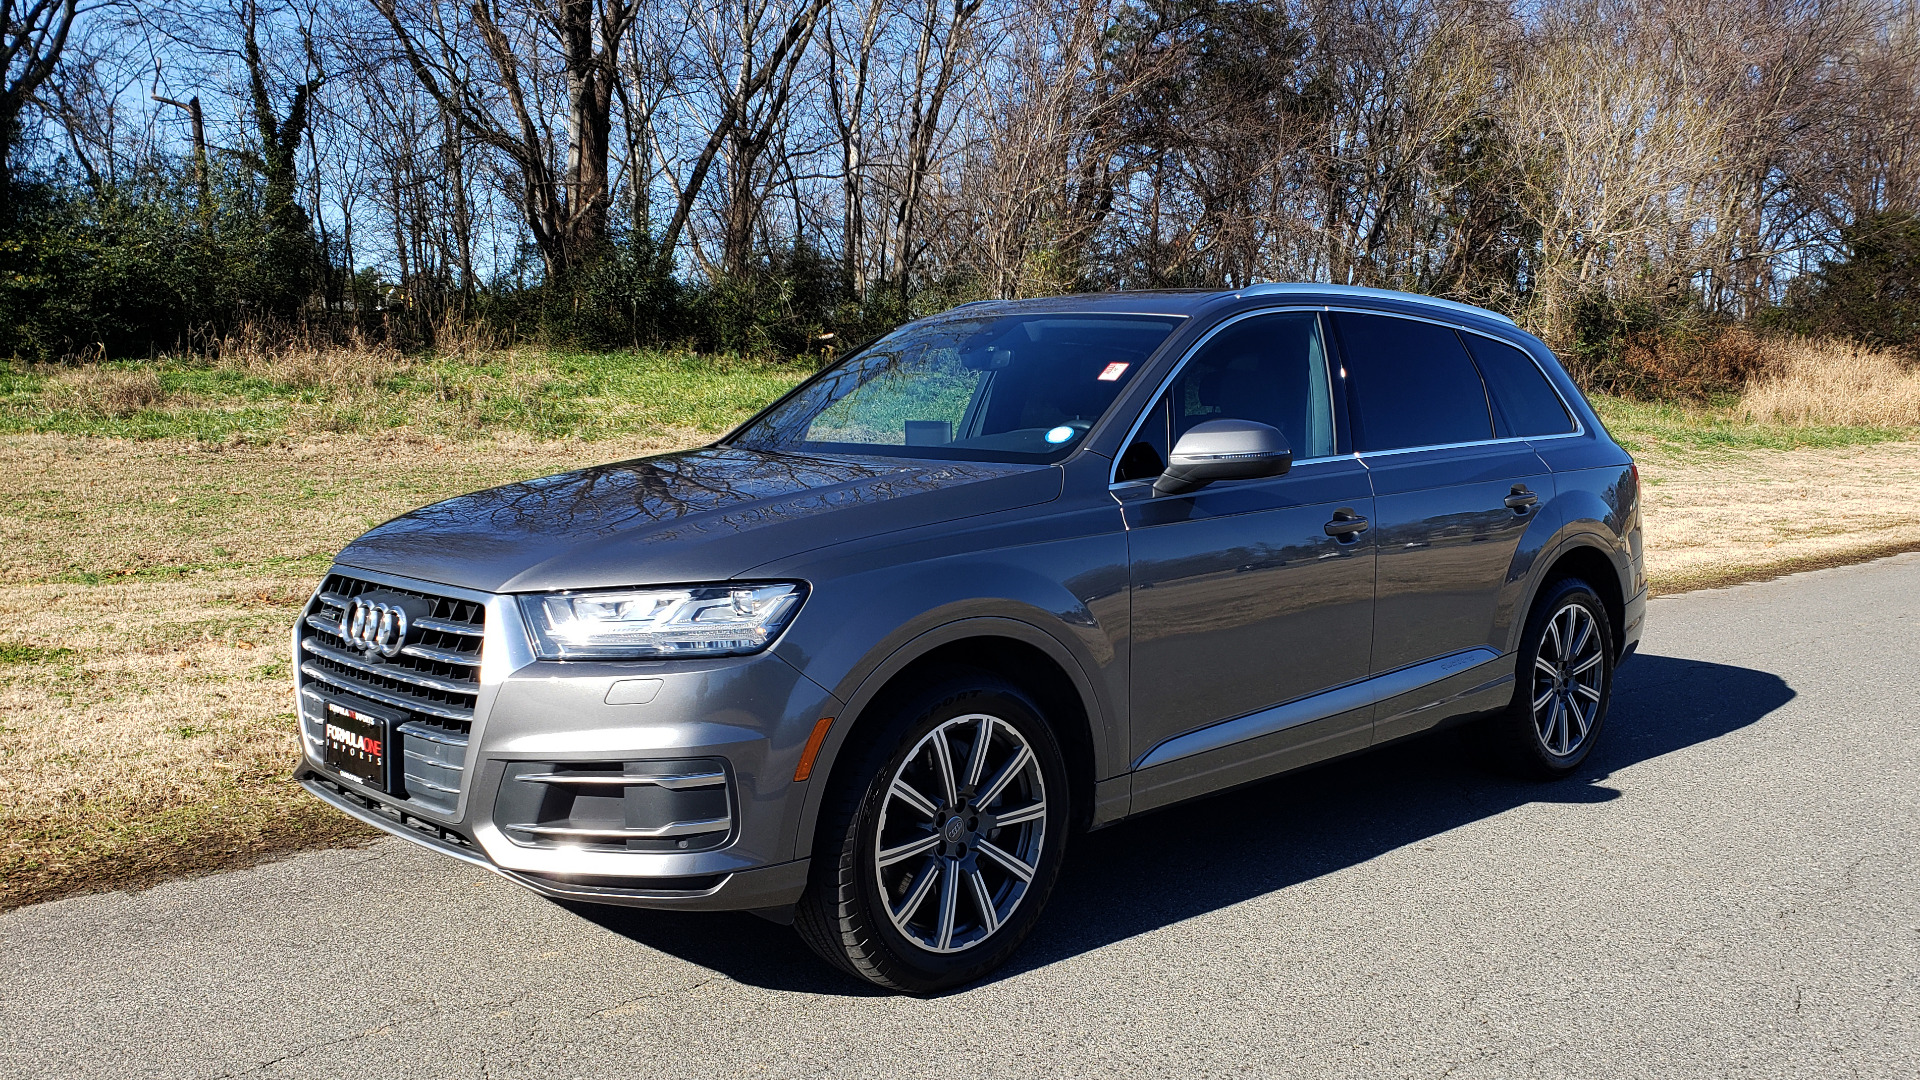 Used 2017 Audi Q7 PREMIUM PLUS / 2.0T TIPTRONIC / NAV / PANO-ROOF / 3-ROW / REARVIEW for sale $33,999 at Formula Imports in Charlotte NC 28227 1